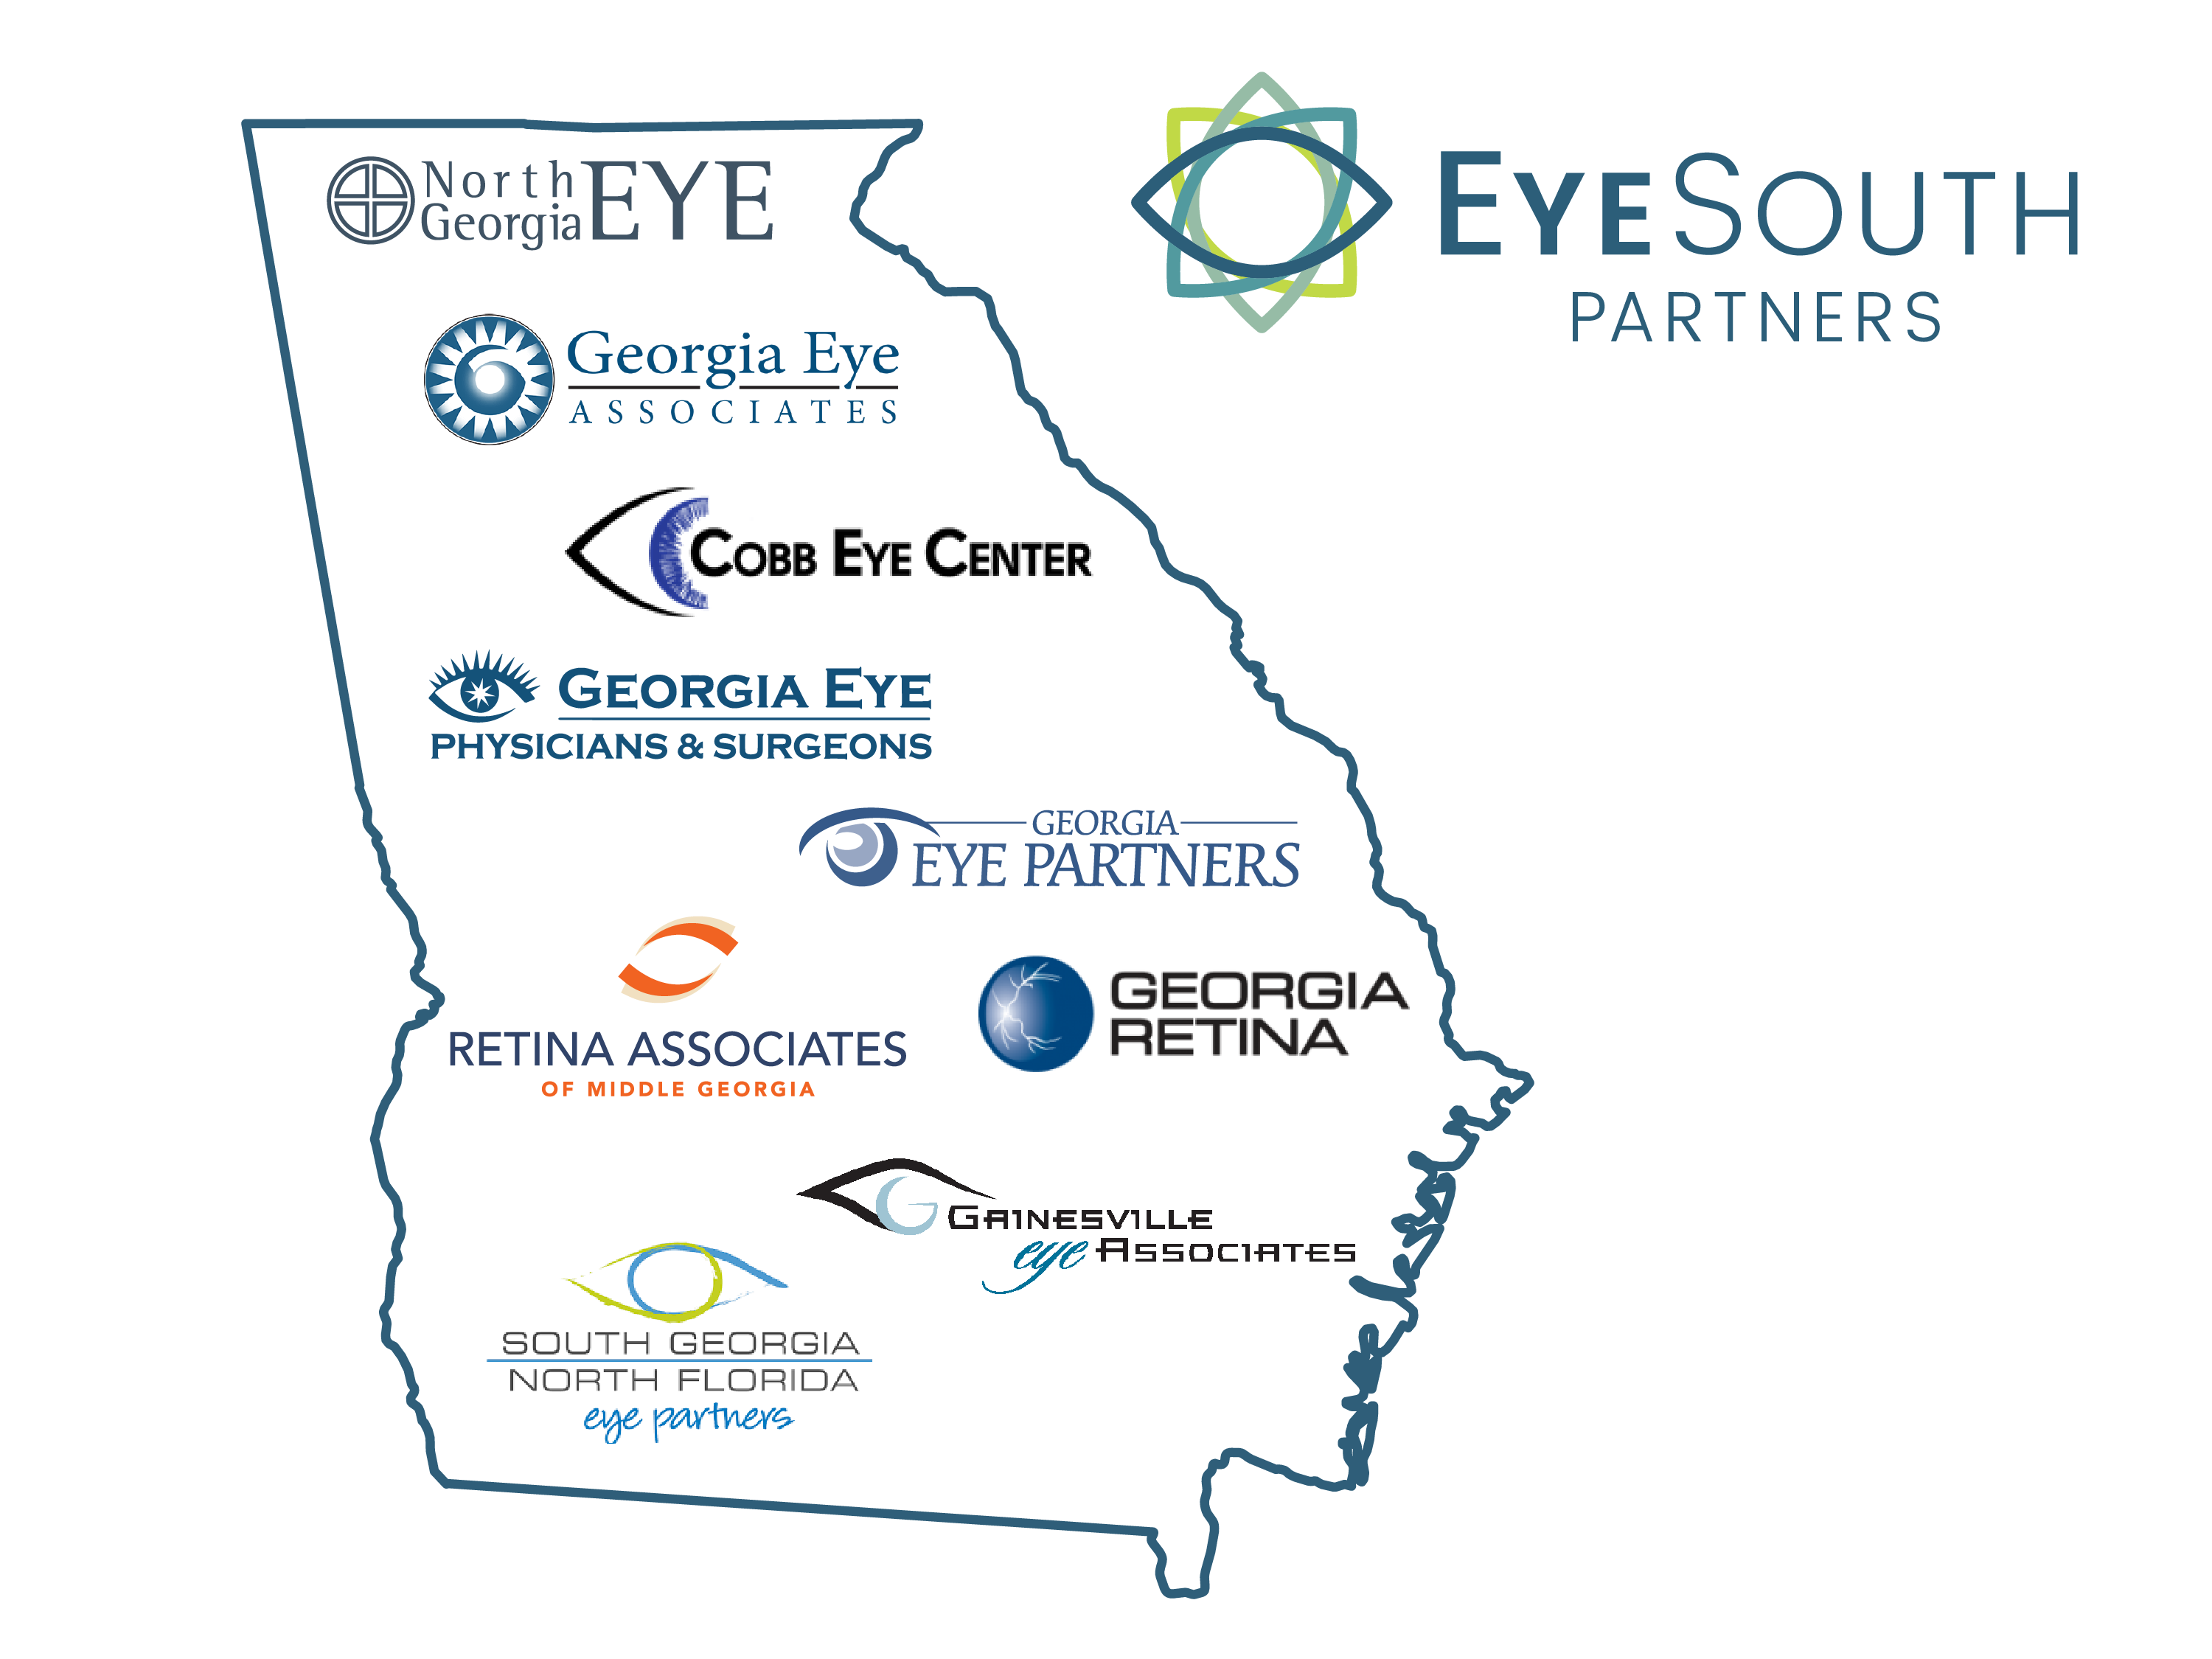 EyeSouth Partners - Our Presenting Sponsor